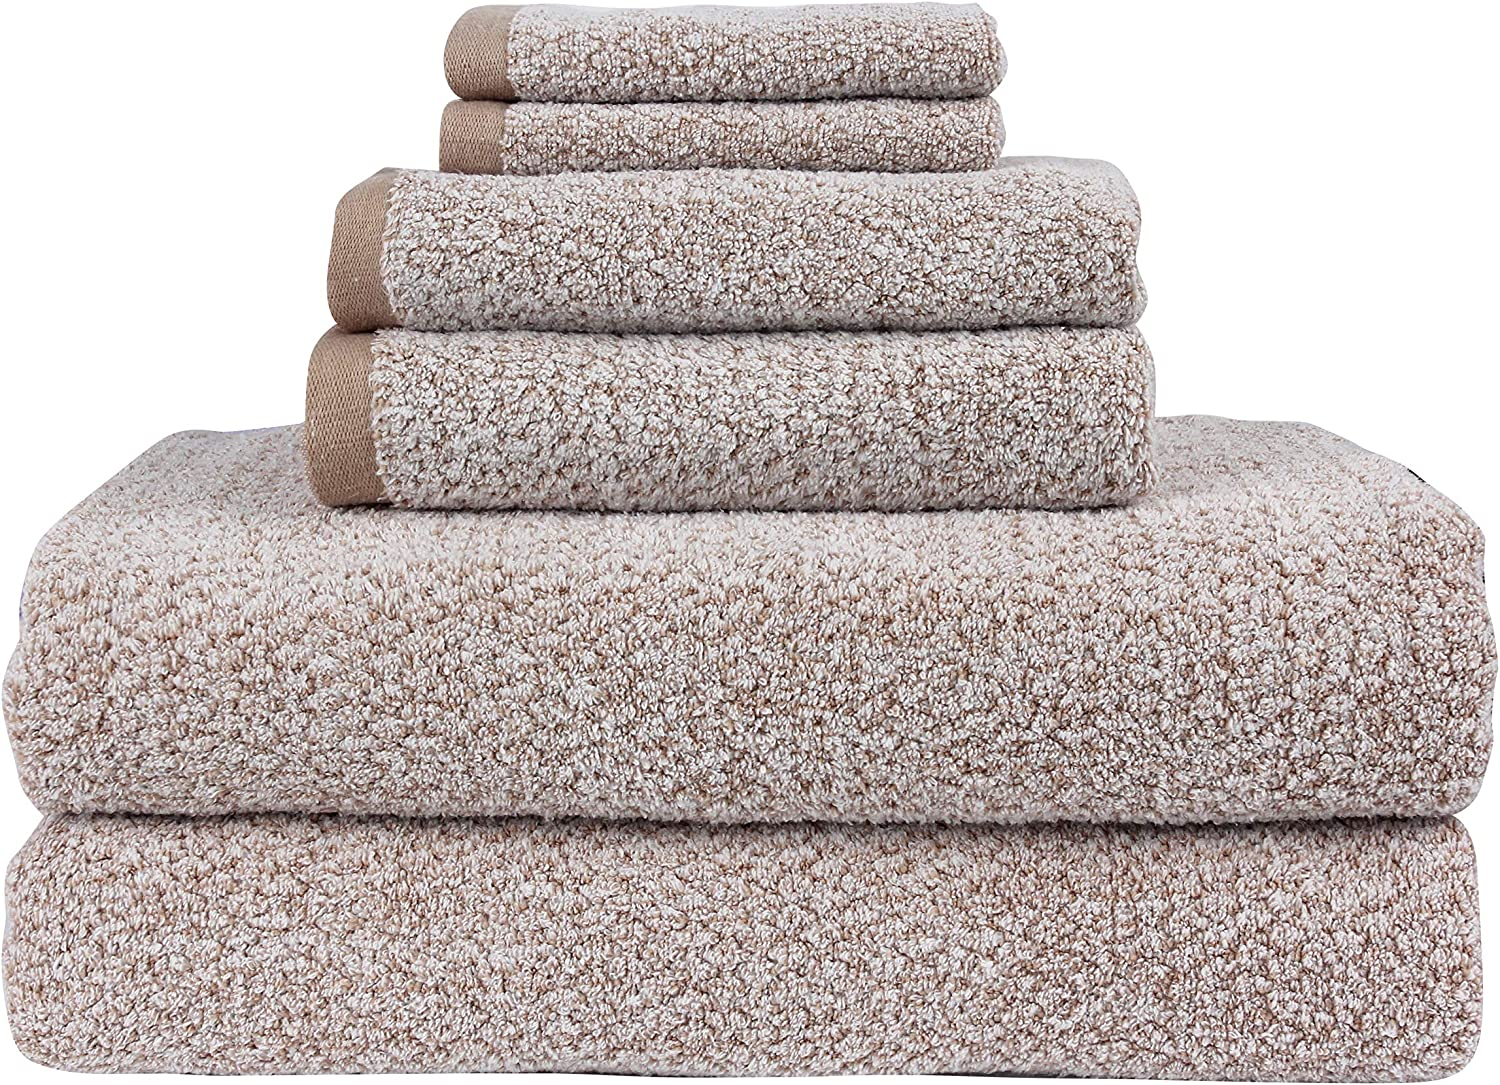 Everplush Diamond Jacquard Spasm price Towels Recycled Some reservation Bath To Piece 6 Sheet